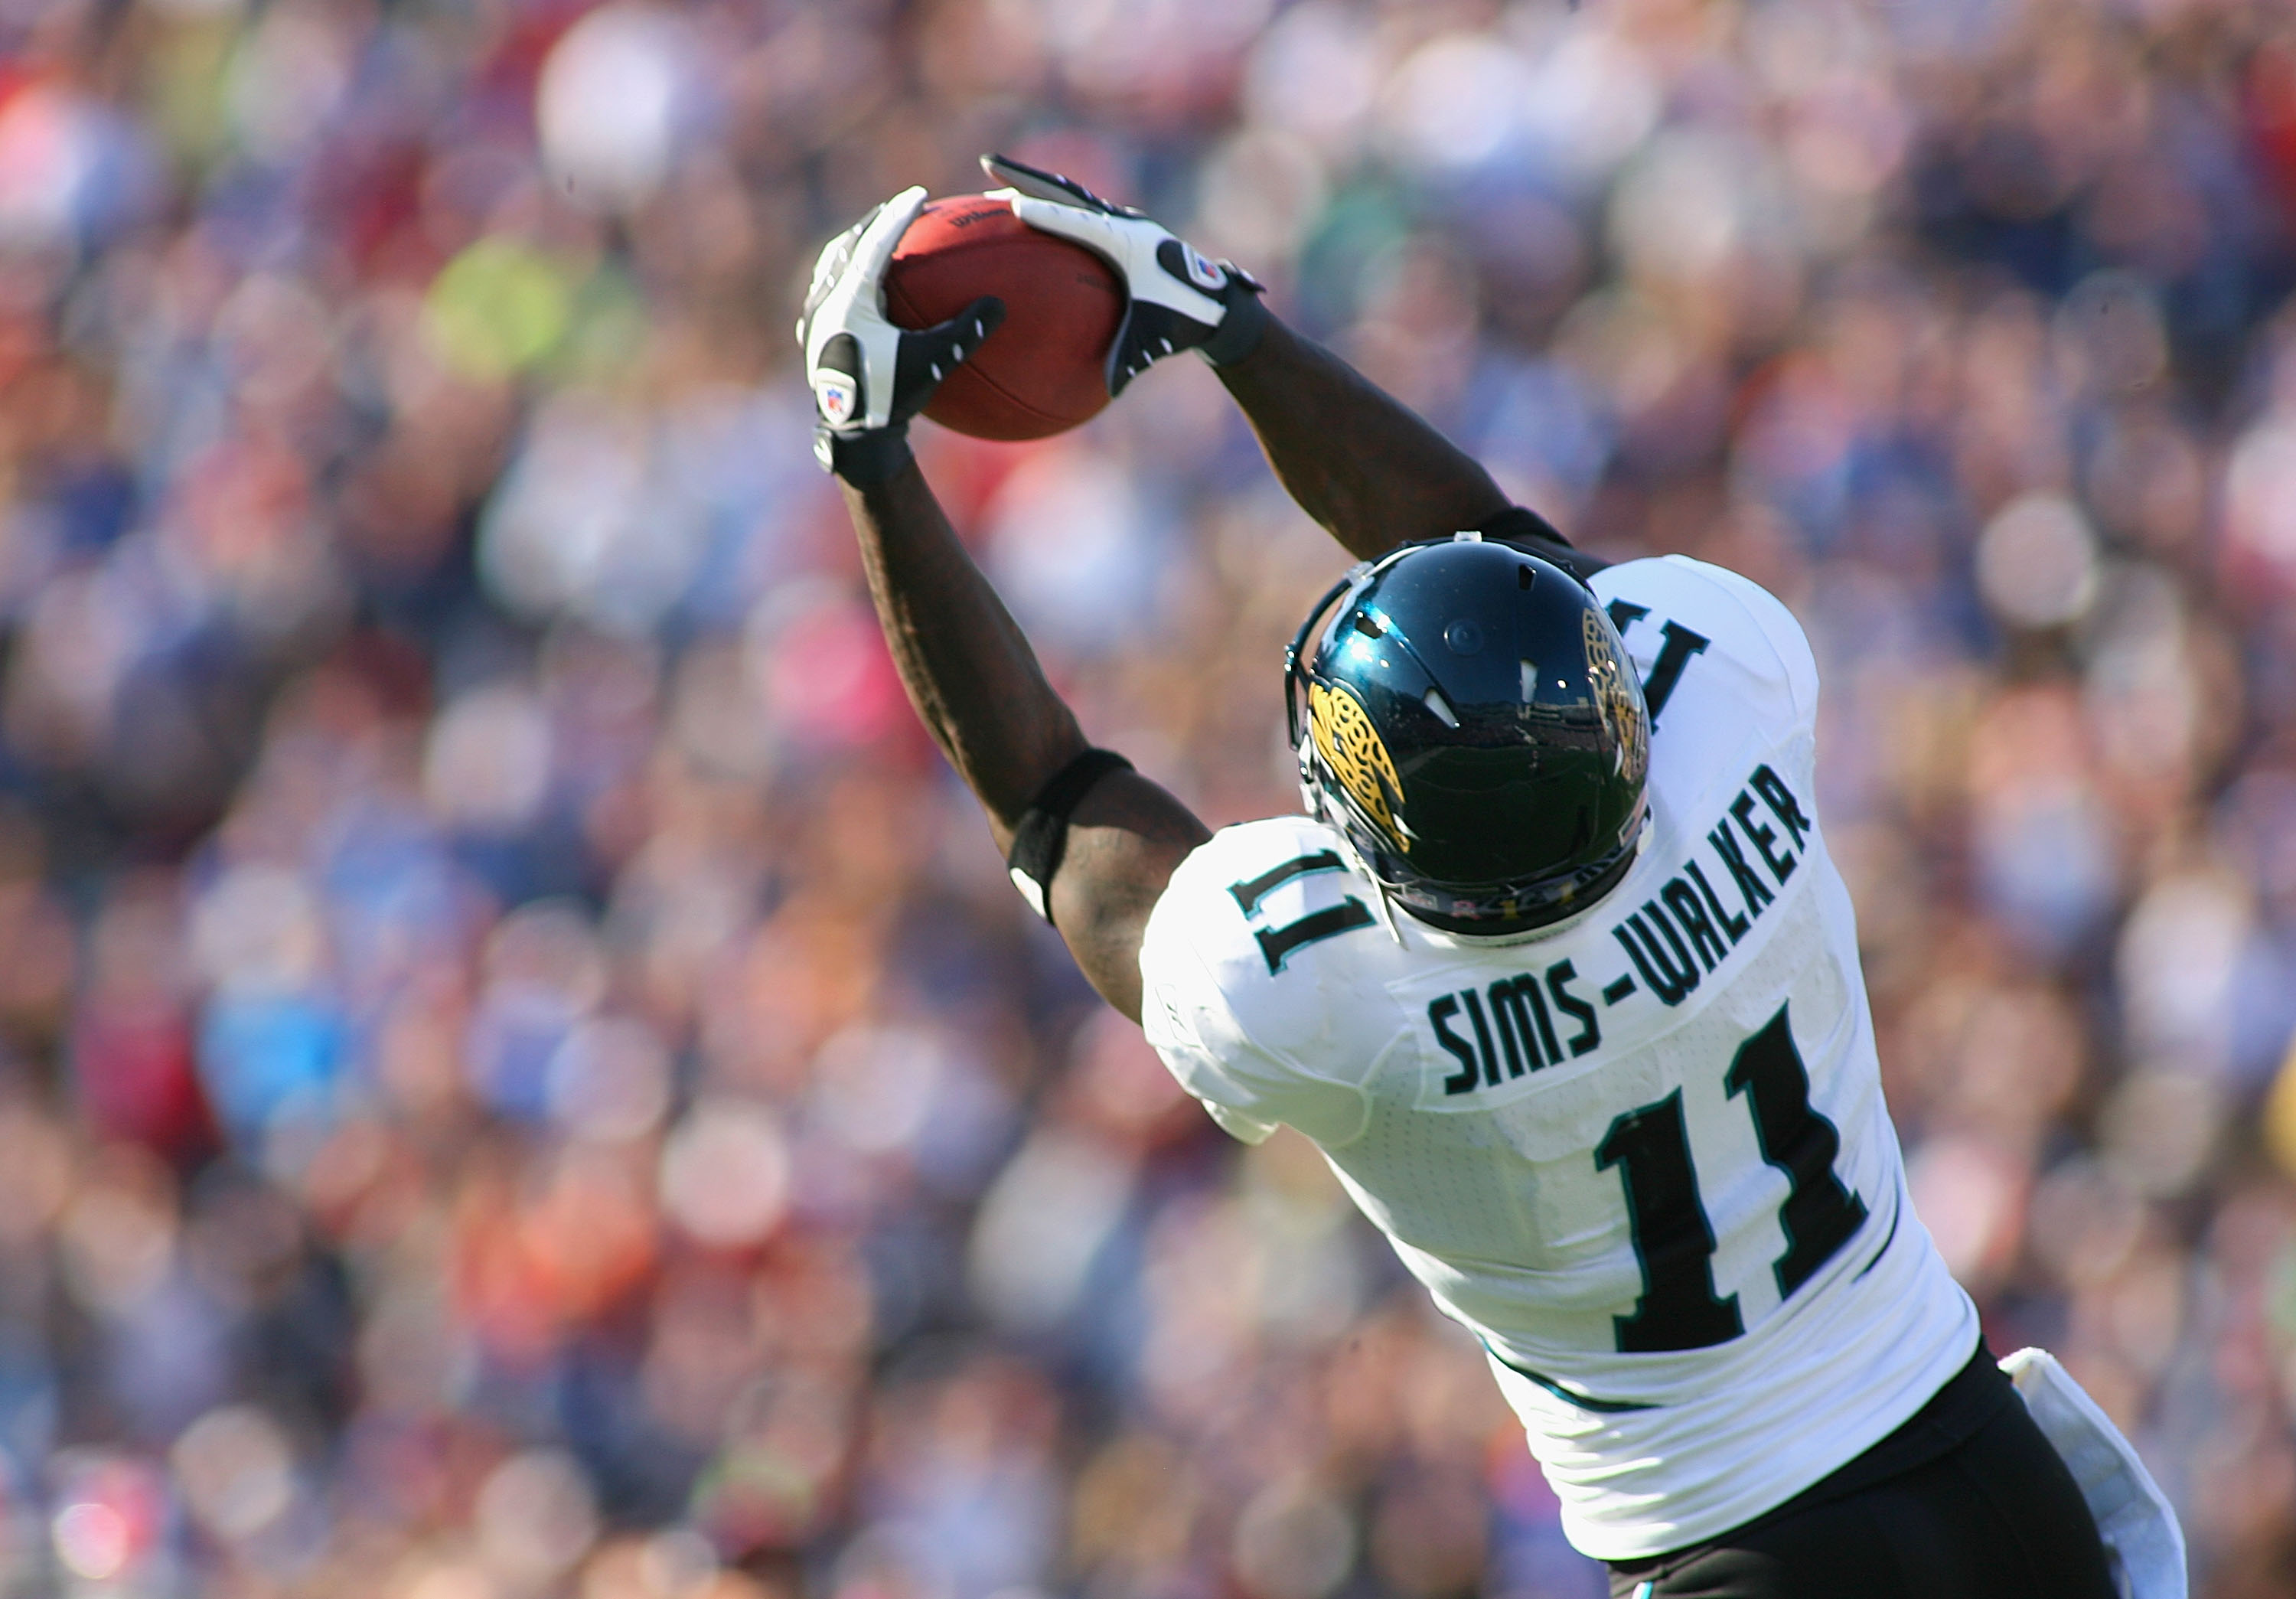 ORCHARD PARK, NY - OCTOBER 10:  Mike Sims-Walker #11 of the Jacksonville Jaguars makes a catch against the Buffalo Bills   at Ralph Wilson Stadium on October 10, 2010 in Orchard Park, New York. Jacksonville won 36-26. (Photo by Rick Stewart/Getty Images)